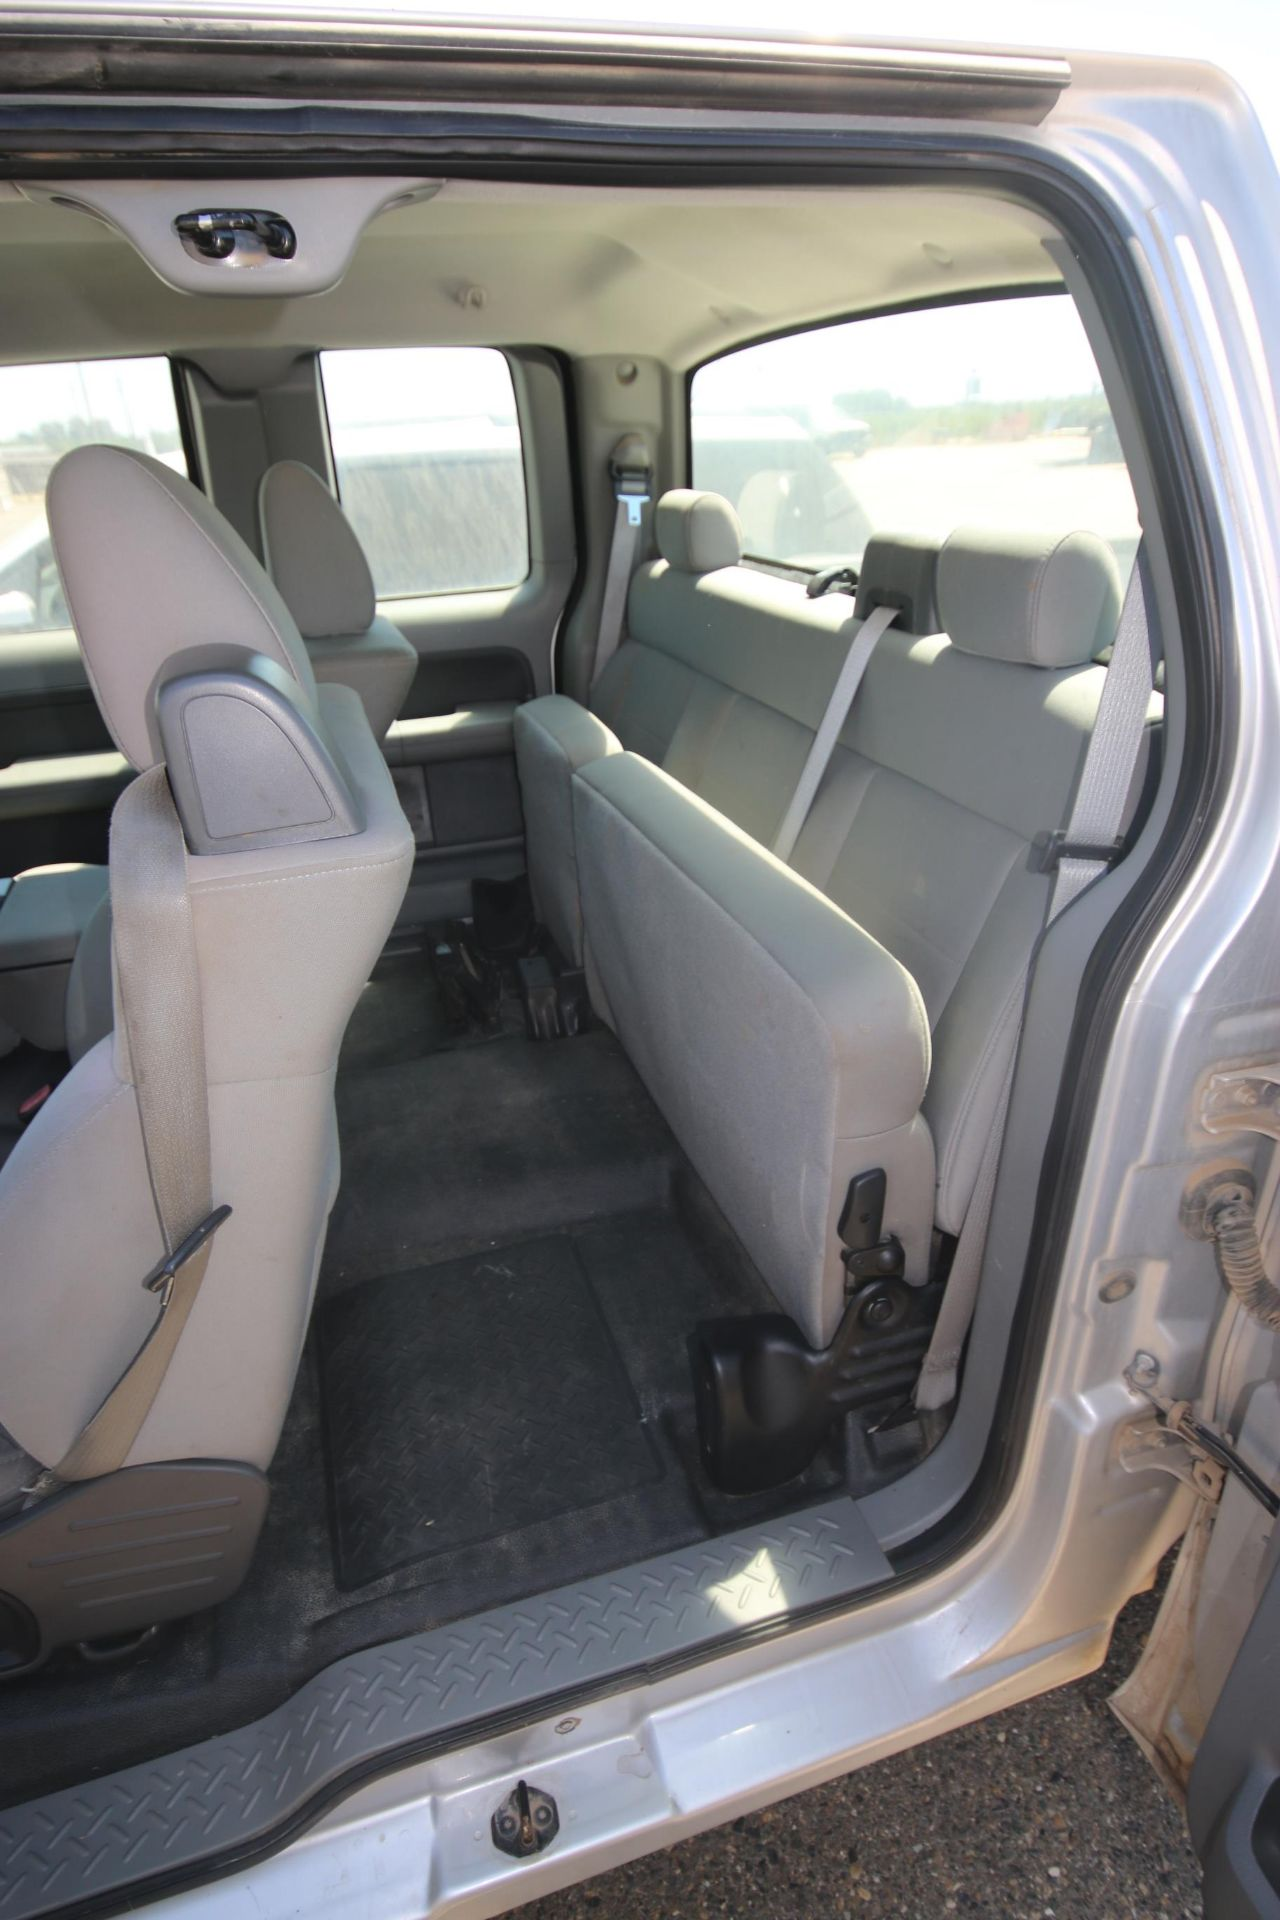 2008 Ford F150 Pick Up Truck, VIN #: 1FTRX12W7BFB9710, with 214,817 Miles, Started Up as of 06/24/ - Image 19 of 24